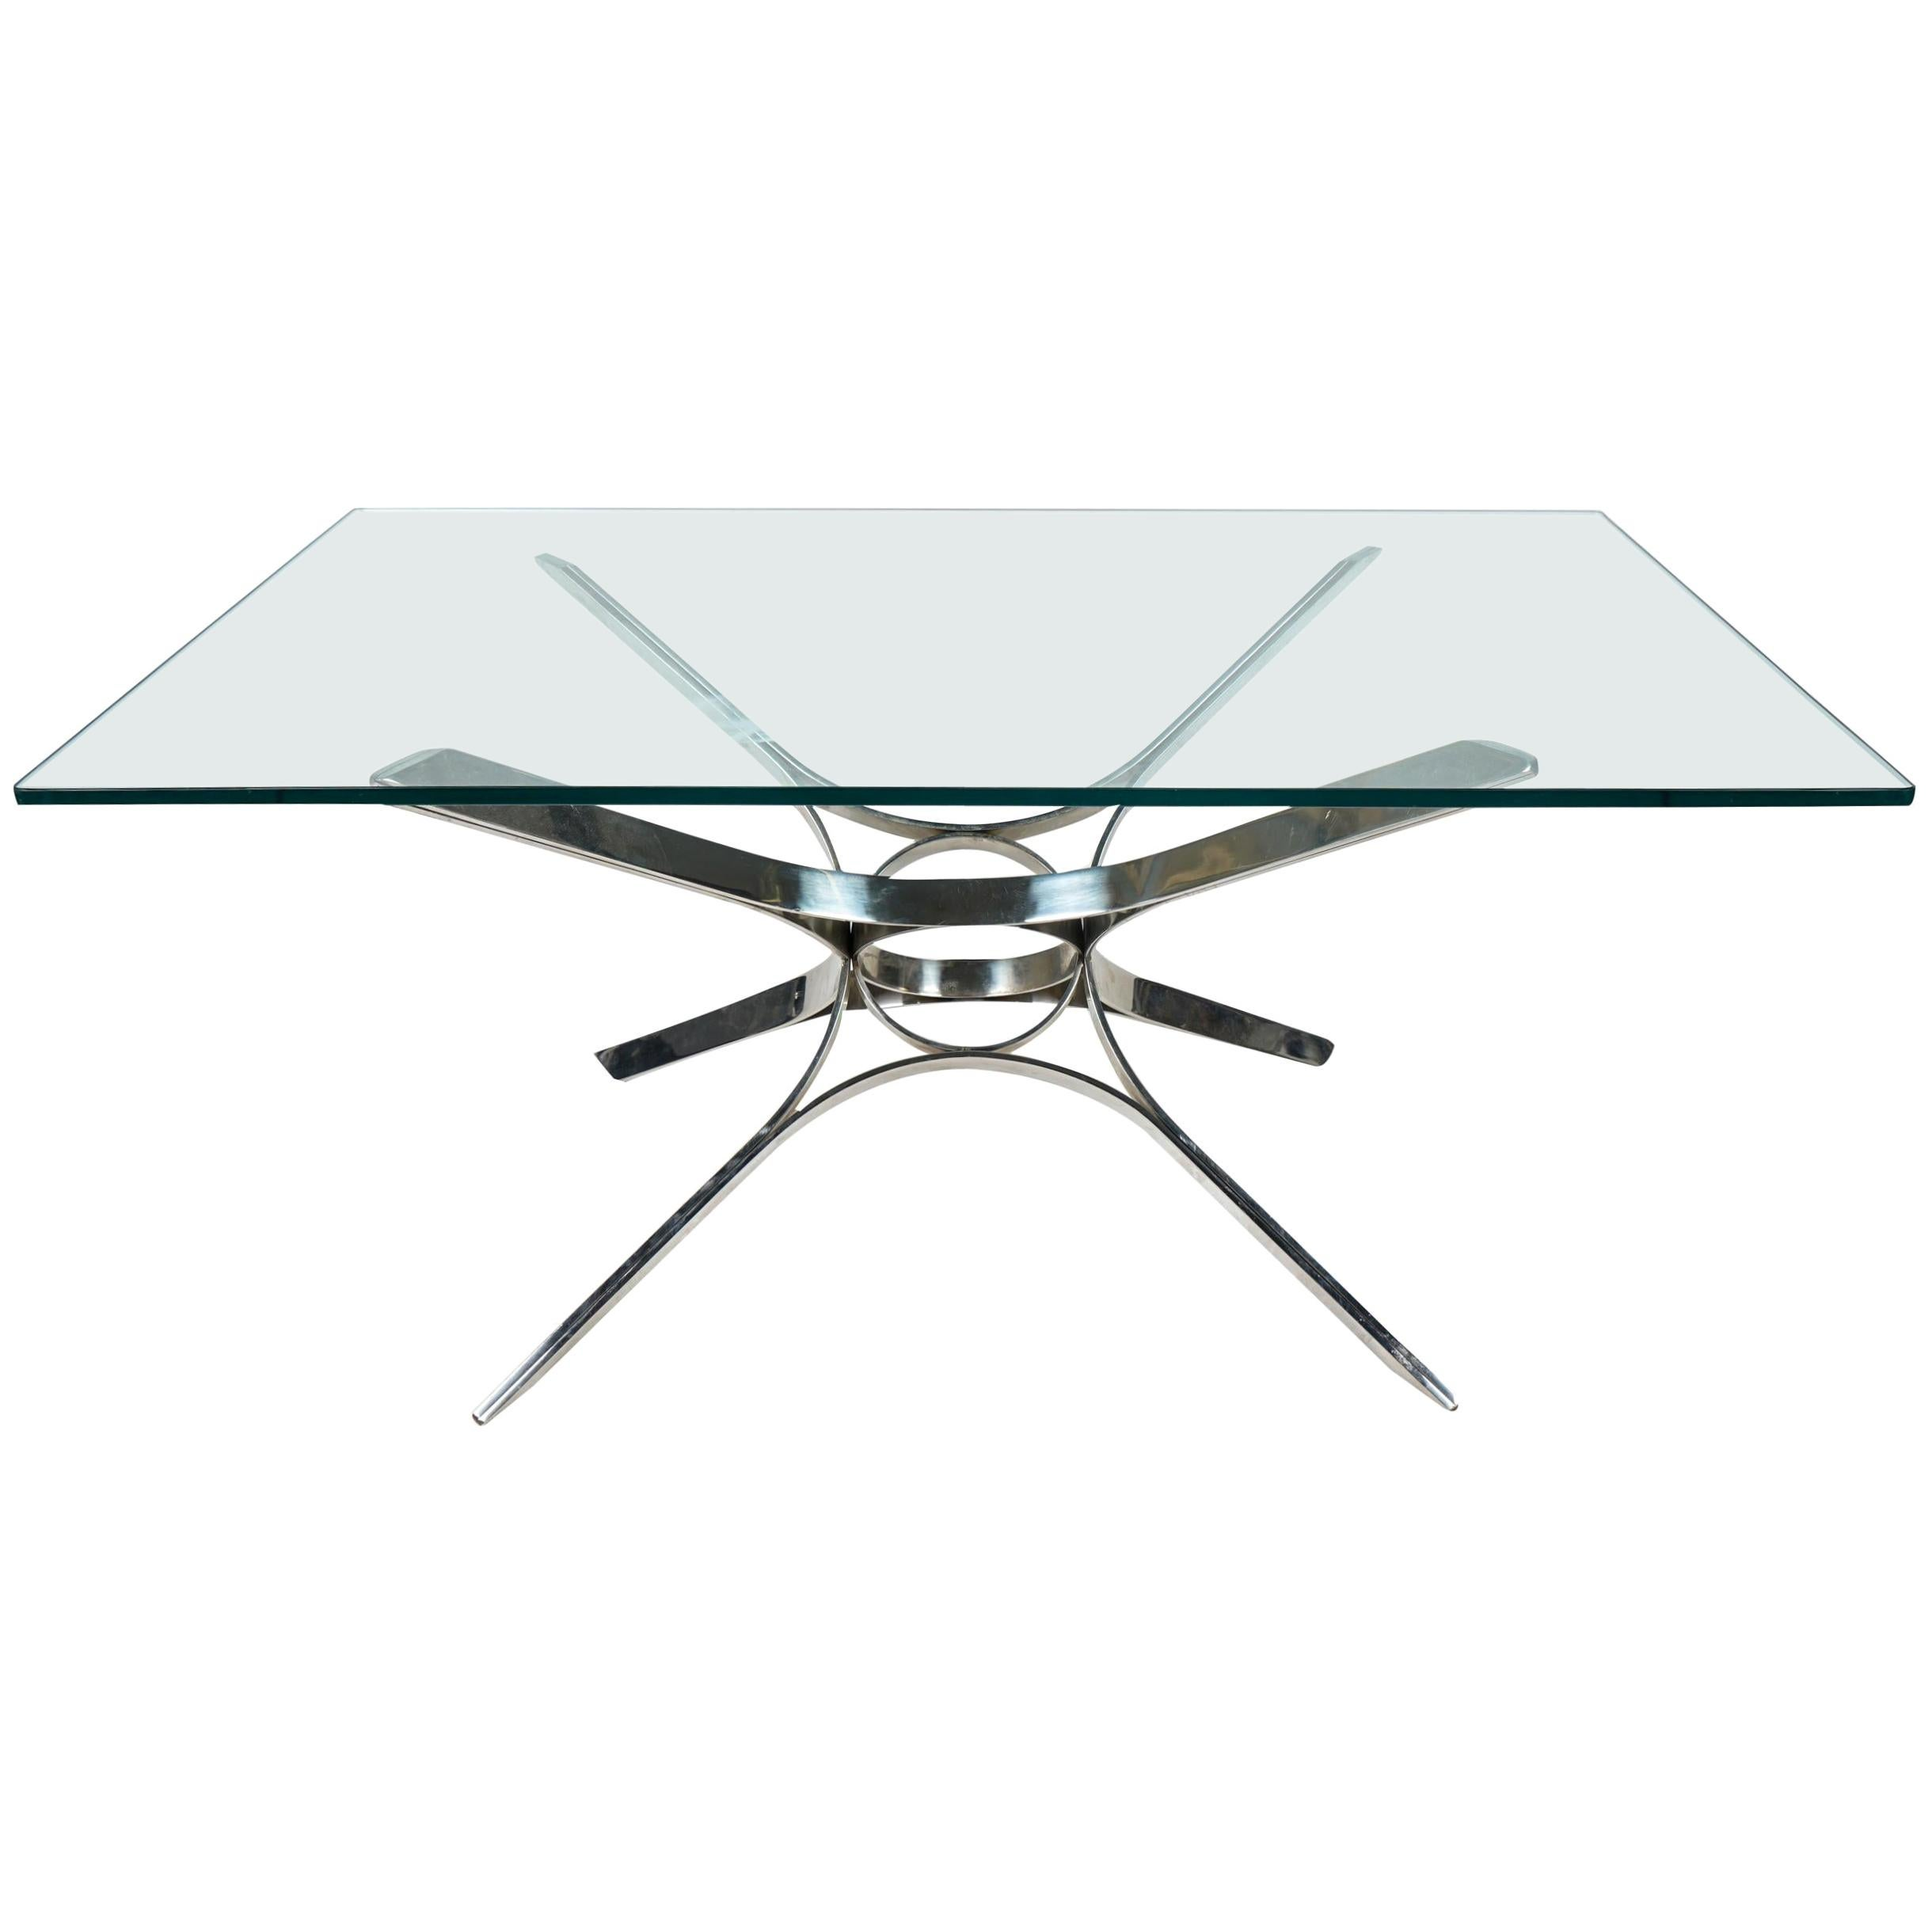 Sculptural Chrome and Glass Coffee Table by Roger Sprunger for Dunbar